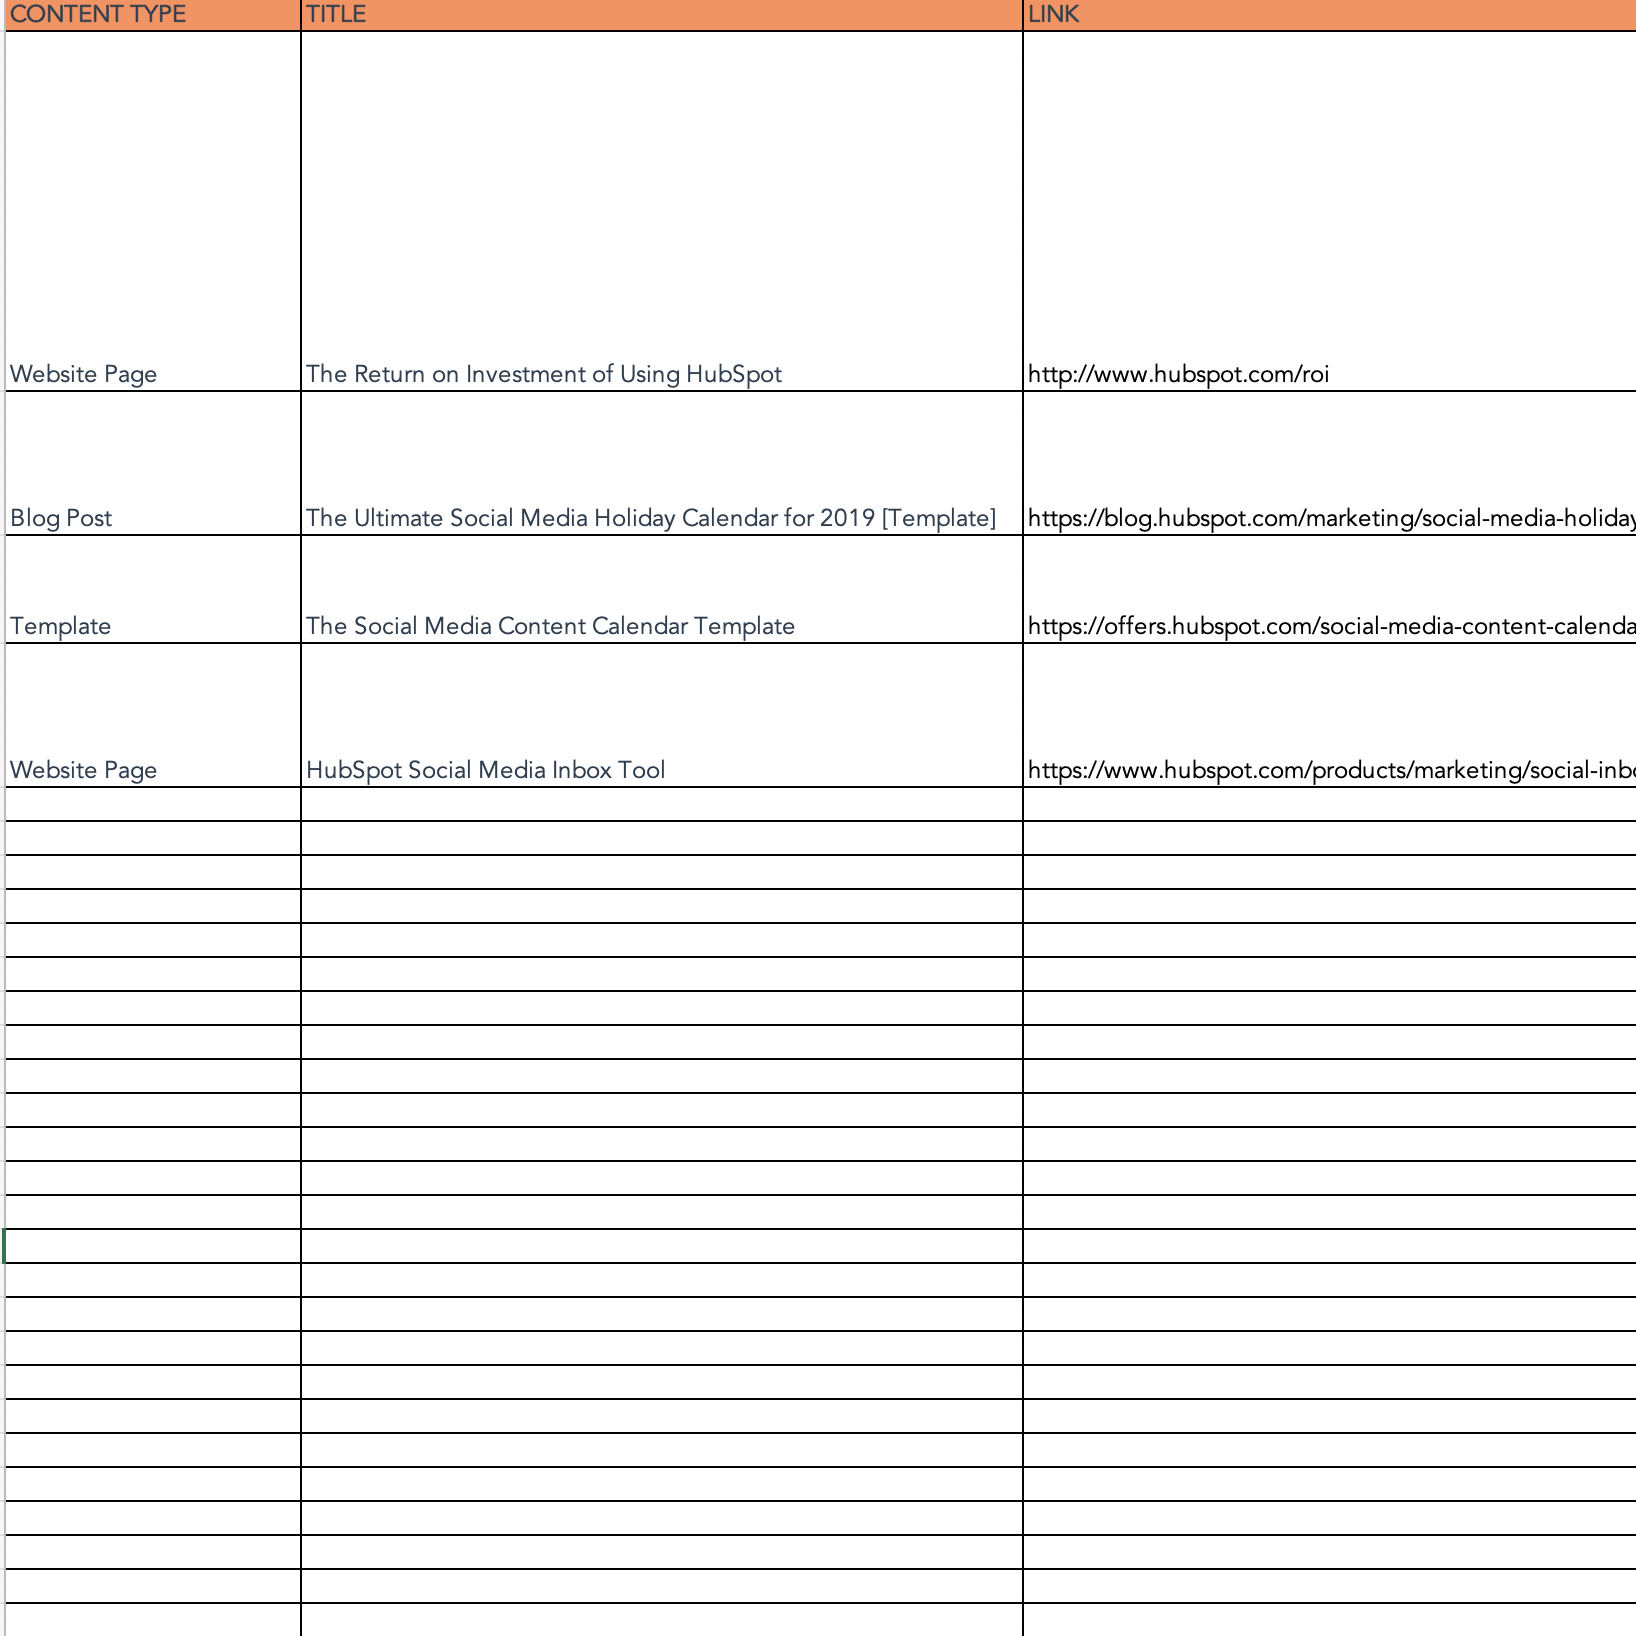 Social media idea repository tab on Social Media Calendar template from HubSpot